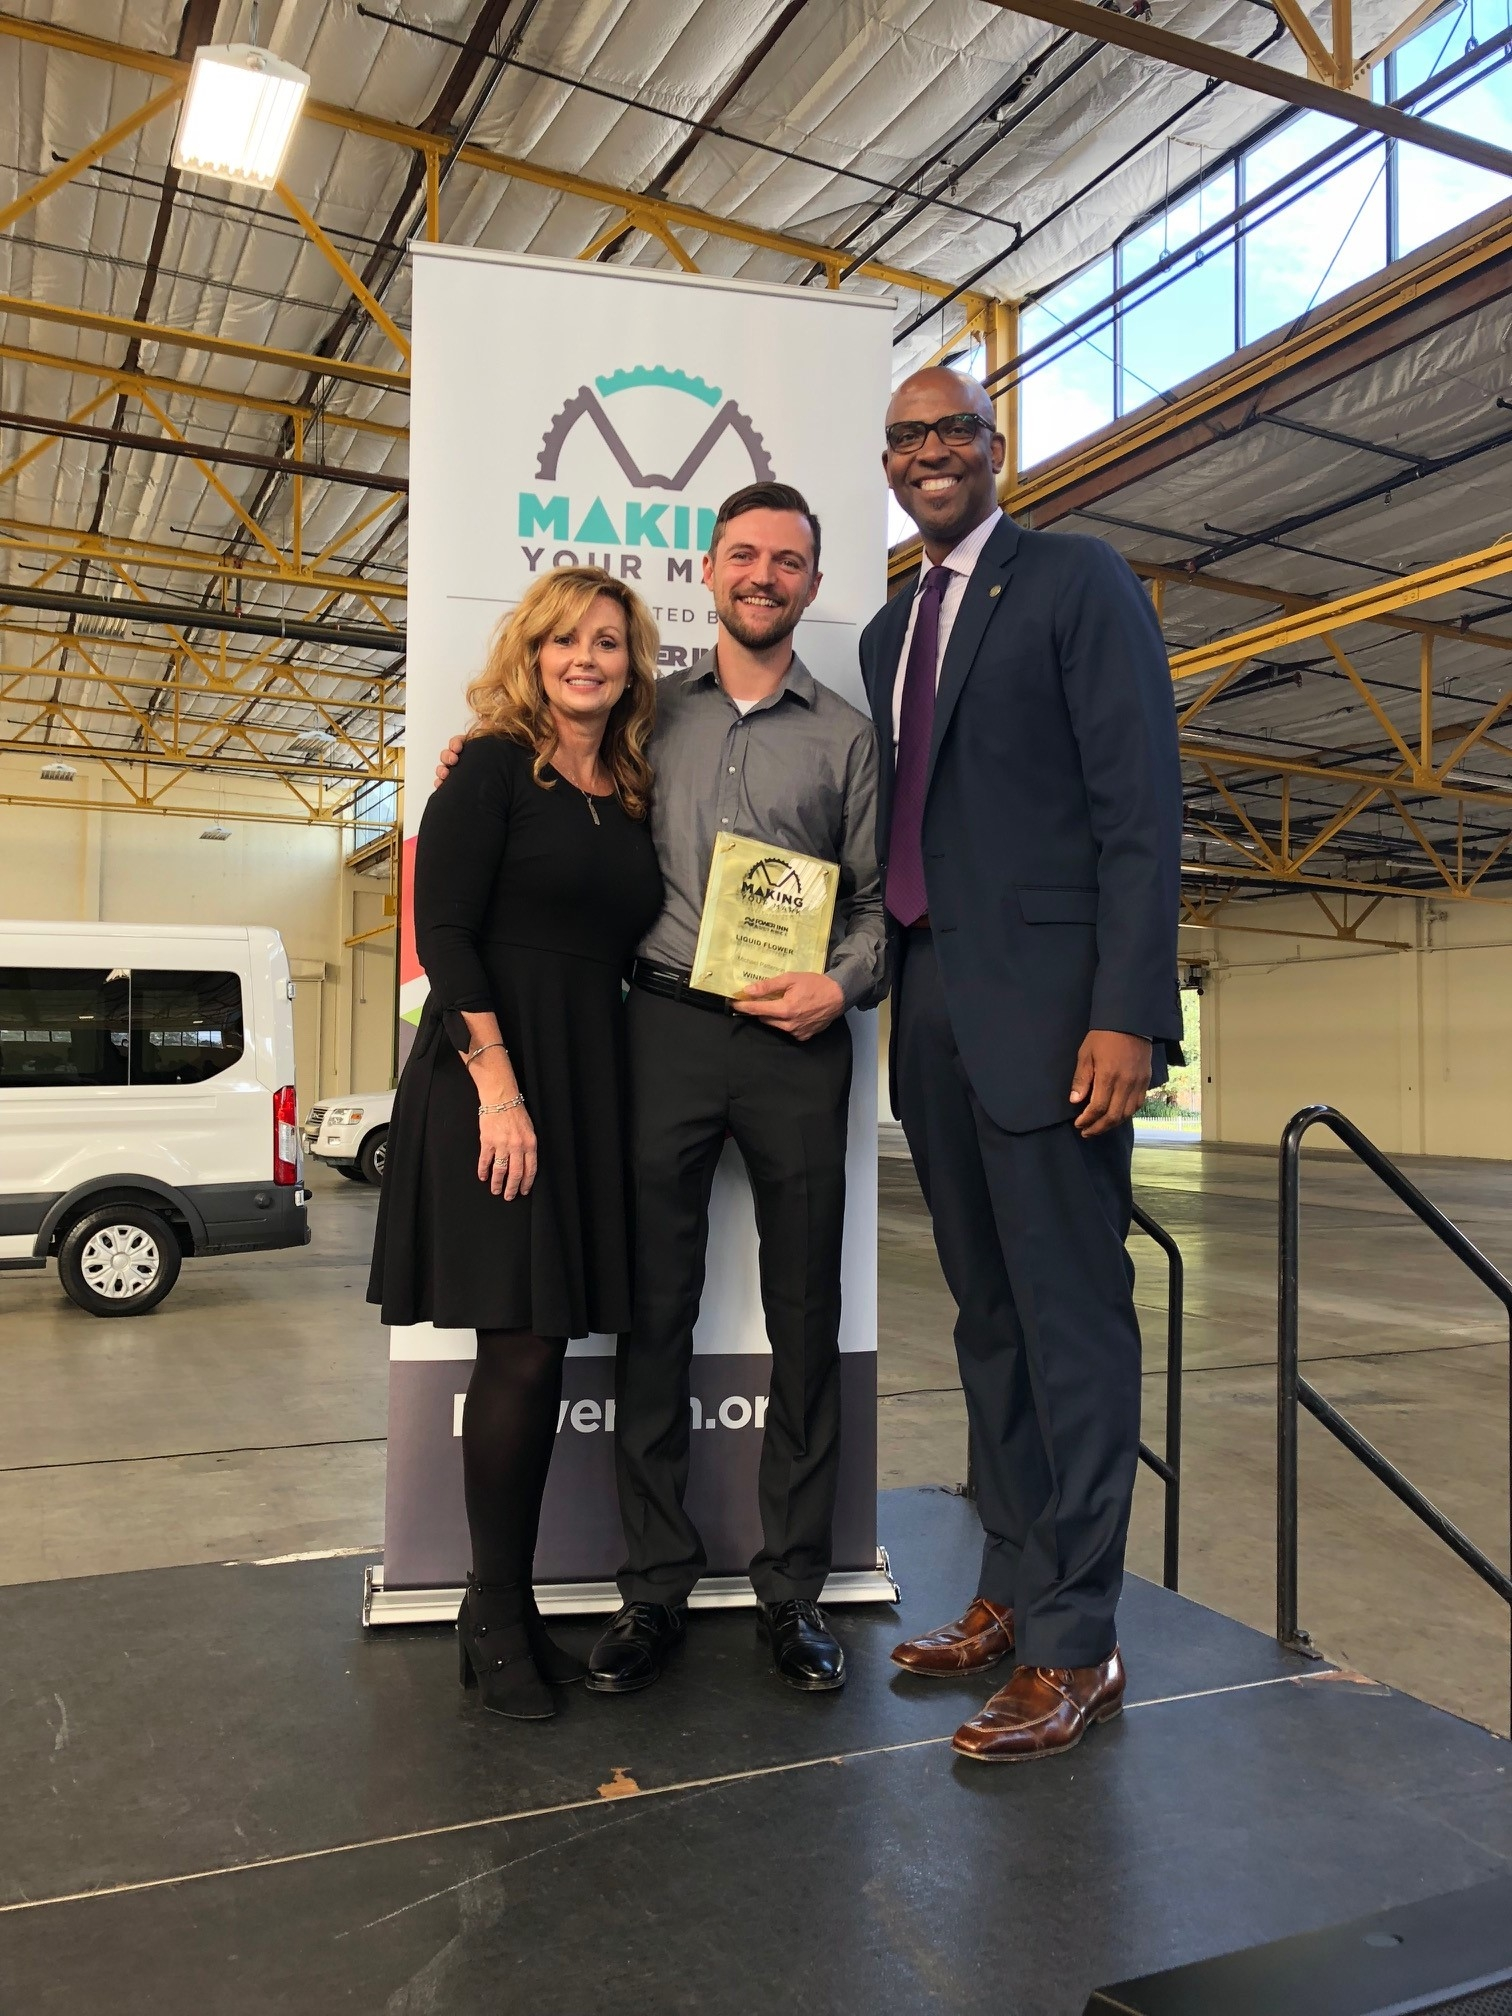 - Michael Patterson, CEO of Liquid Flower was presented an award for winning the 2nd Annual Making Your Mark competition. Also shown is Power Inn Alliance's Executive Director Tracey Schaal, and guest emcee Louis Stewart, Chief Innovation Officer at the City of Sacramento Mayor's Office for Innovation and Entrepreneurship.